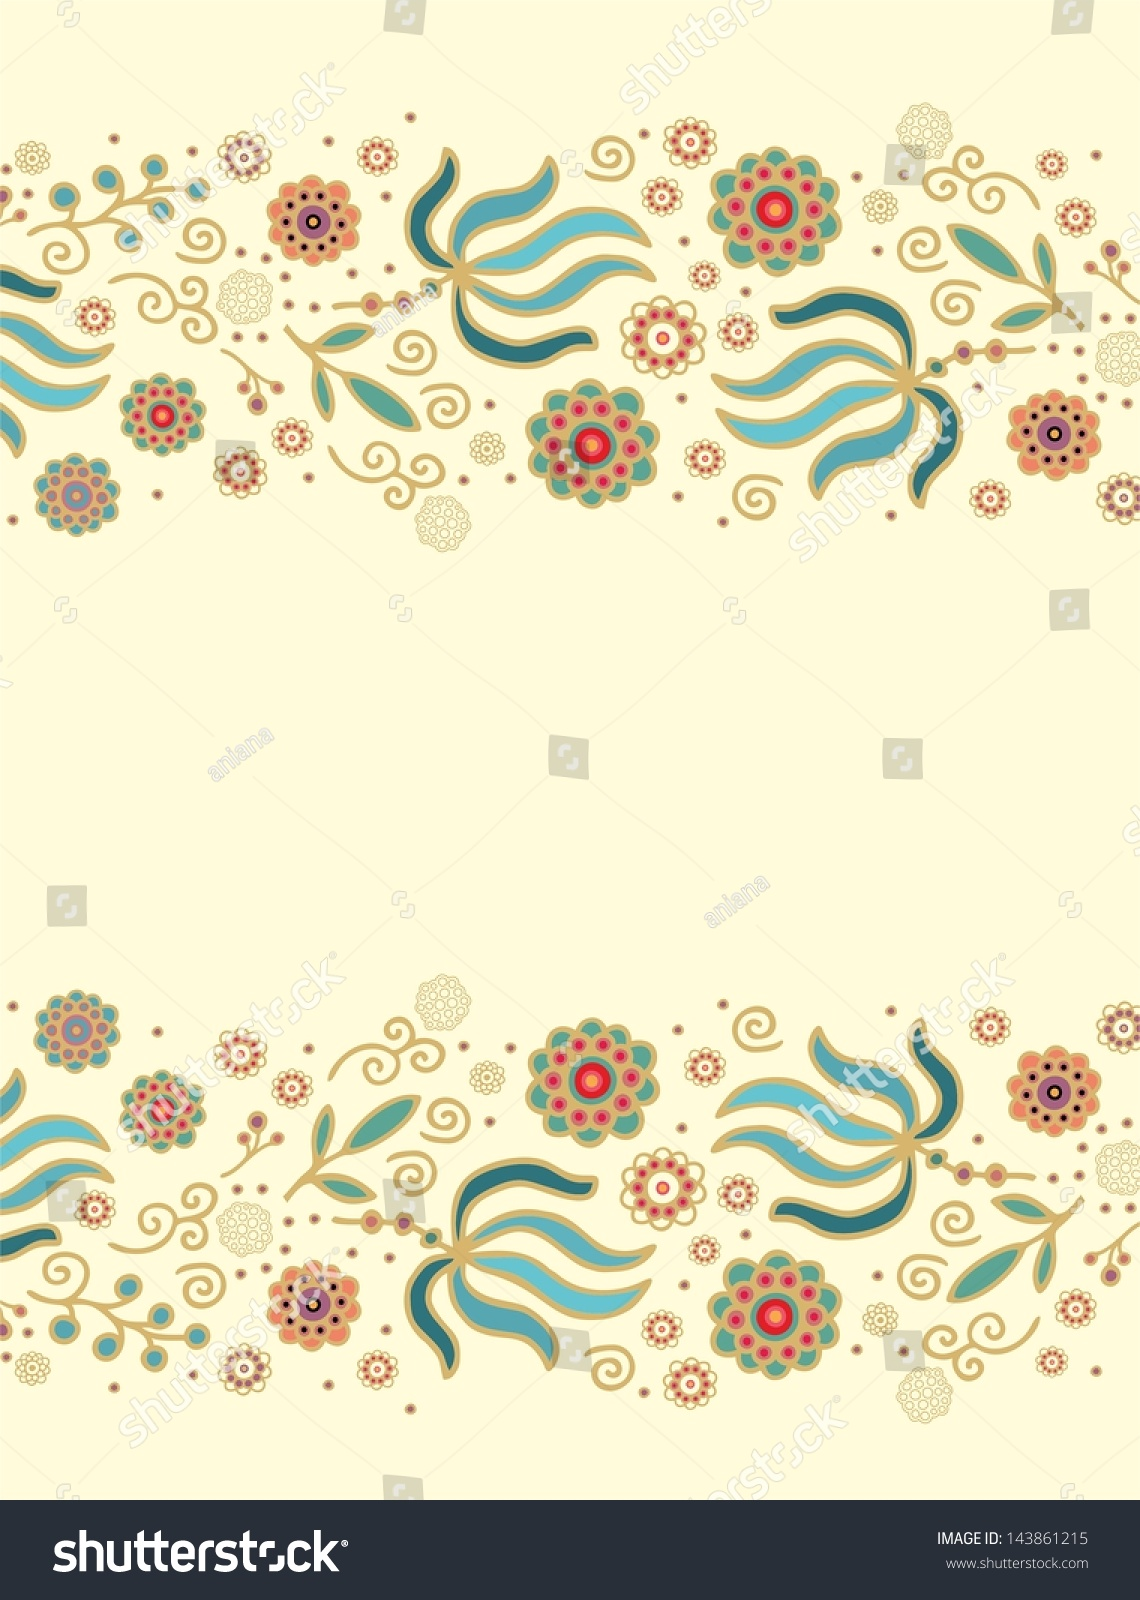 shutterstock floral borders pictures to pin on pinterest floral border vector image floral border vector download